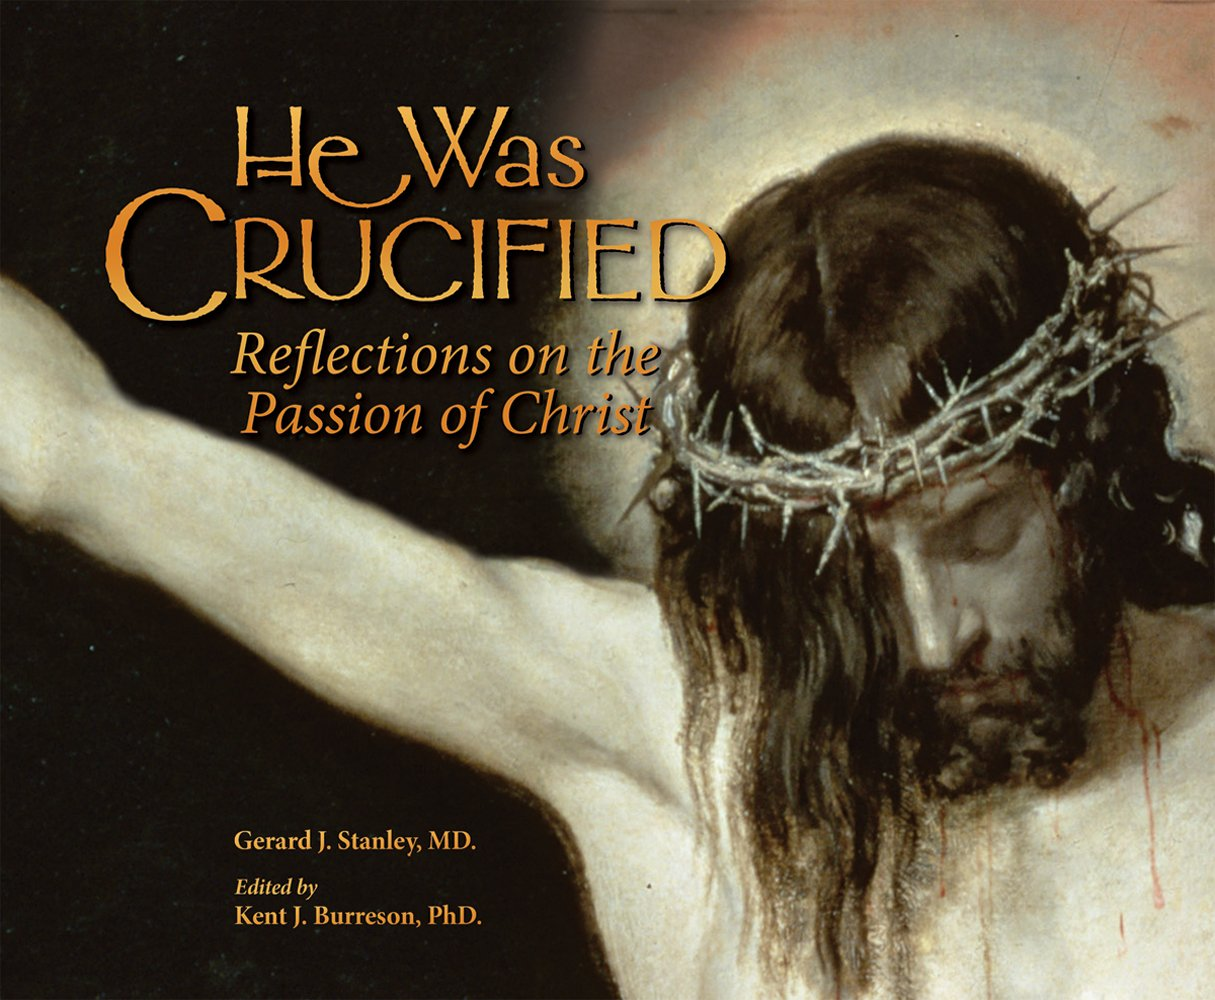 he was crucified reflections on the passion of christ gerard